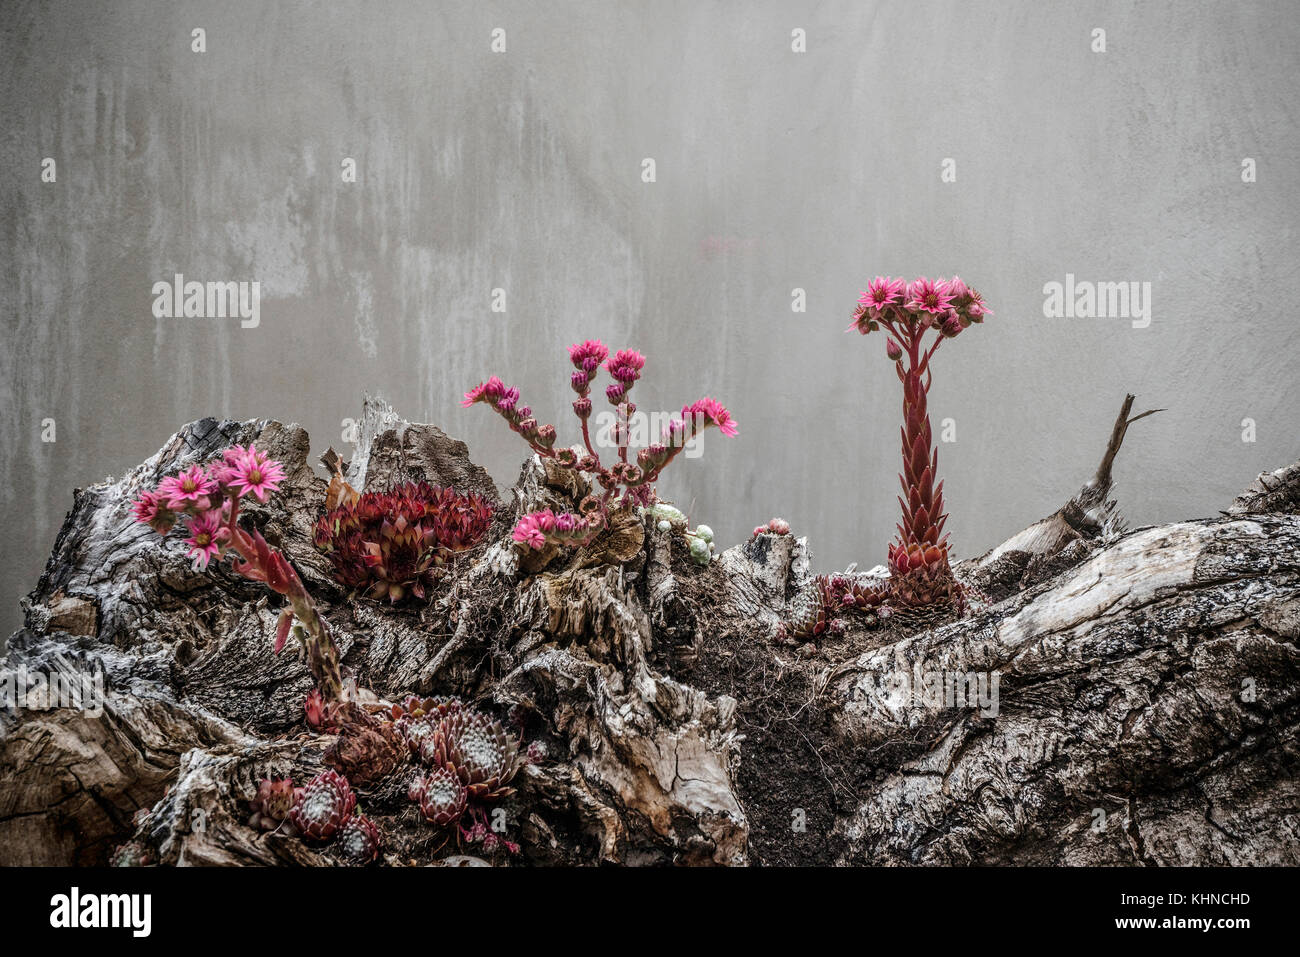 Surreal flowers in violet colors looking alien and from outher space growing on mystical rocks - Stock Image